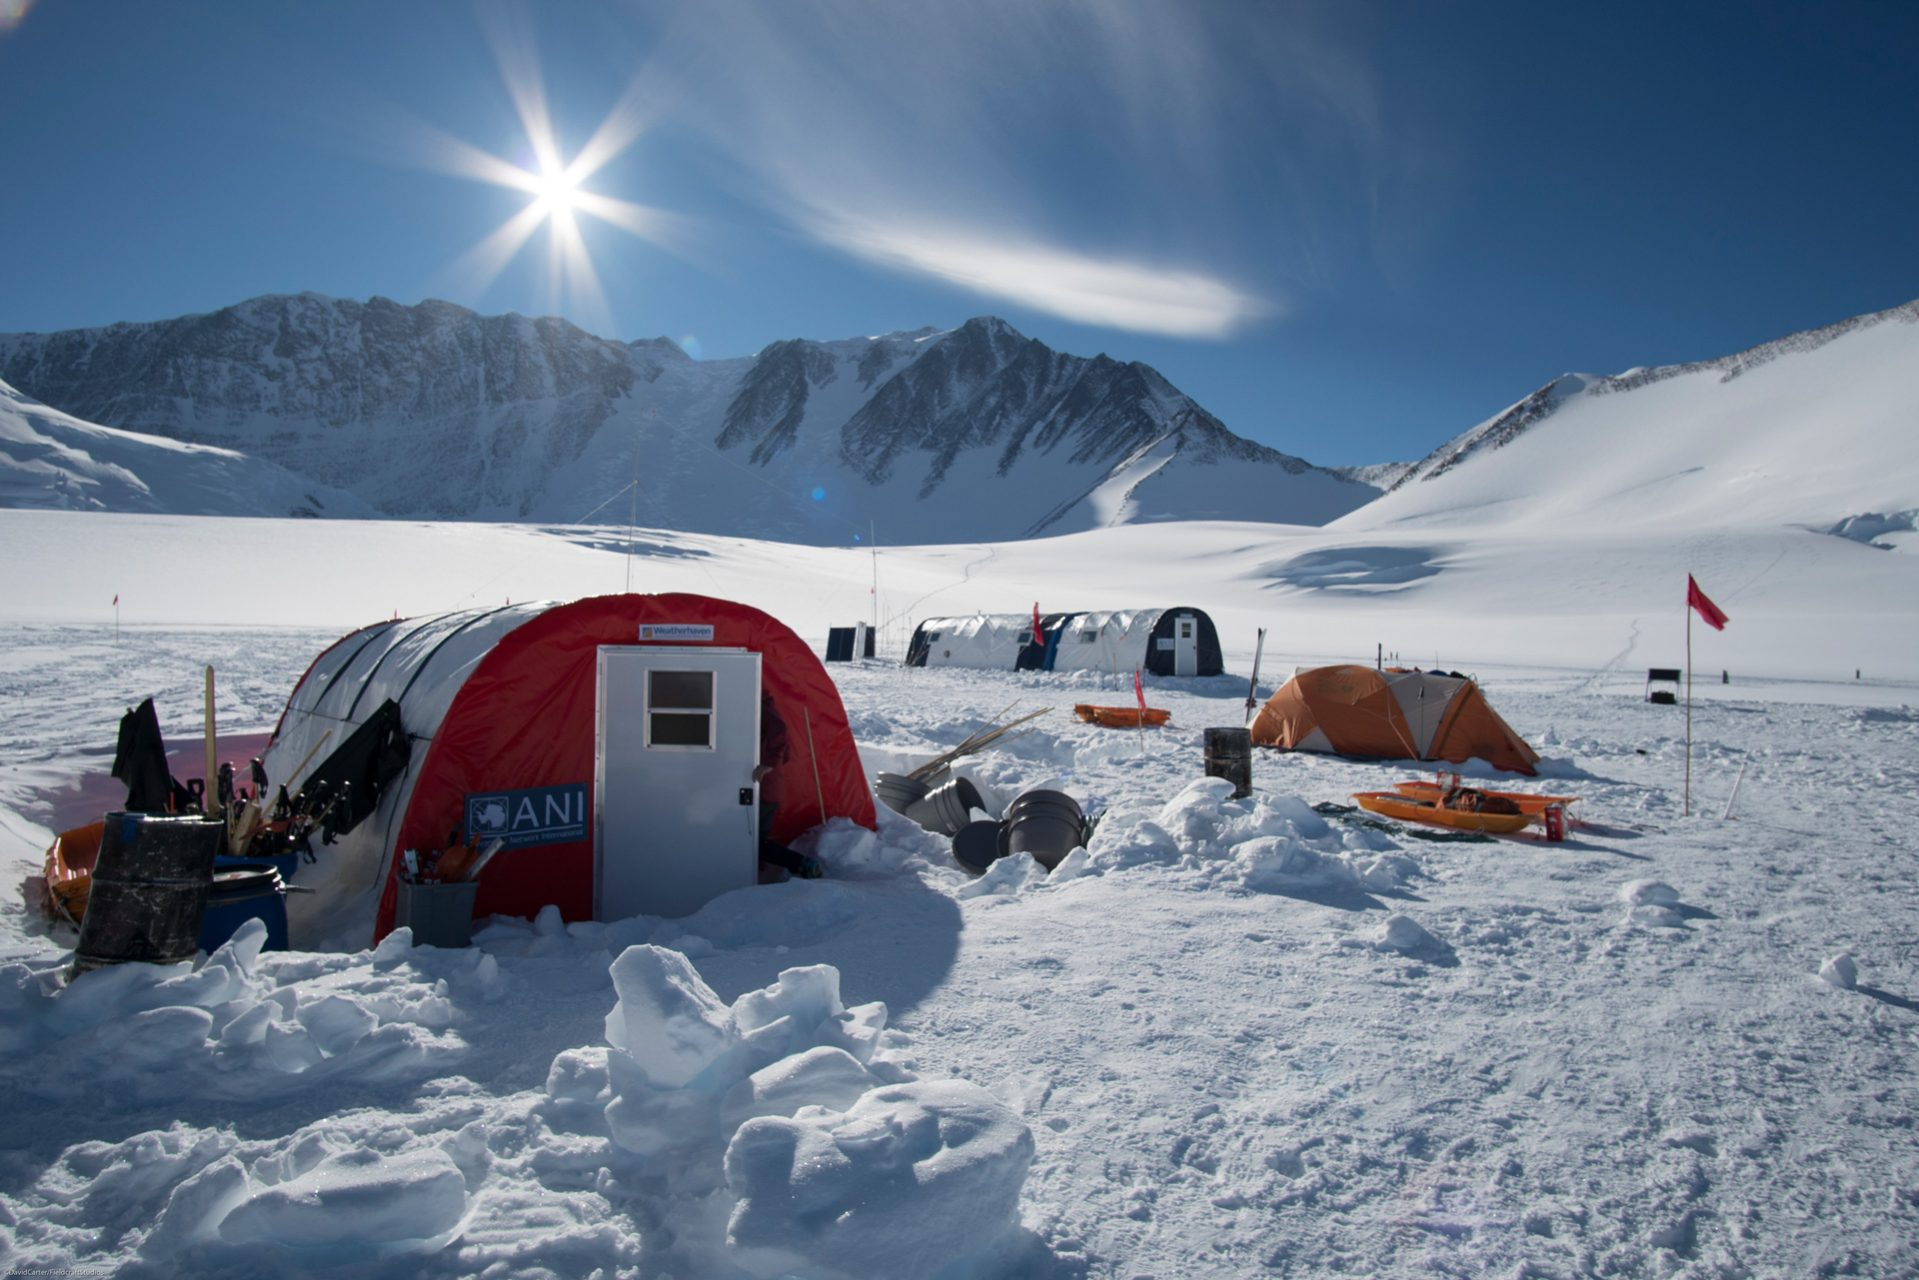 Base camp in Antarctica, Fieldcraft Studios filming with Ranulph Fiennes.